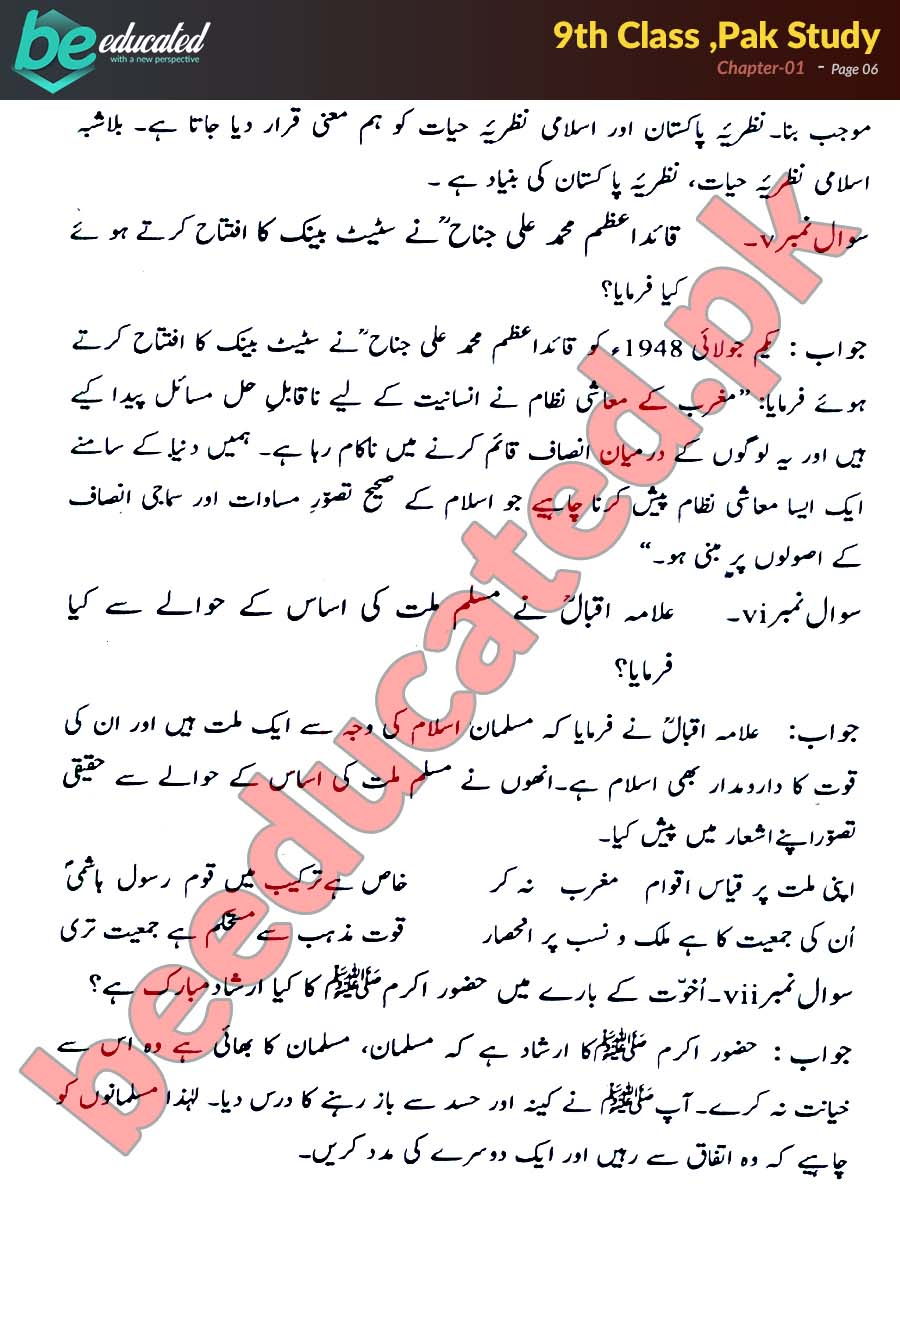 Chapter 1 Pak Studies 9th Class Notes - Matric Part 1 Notes